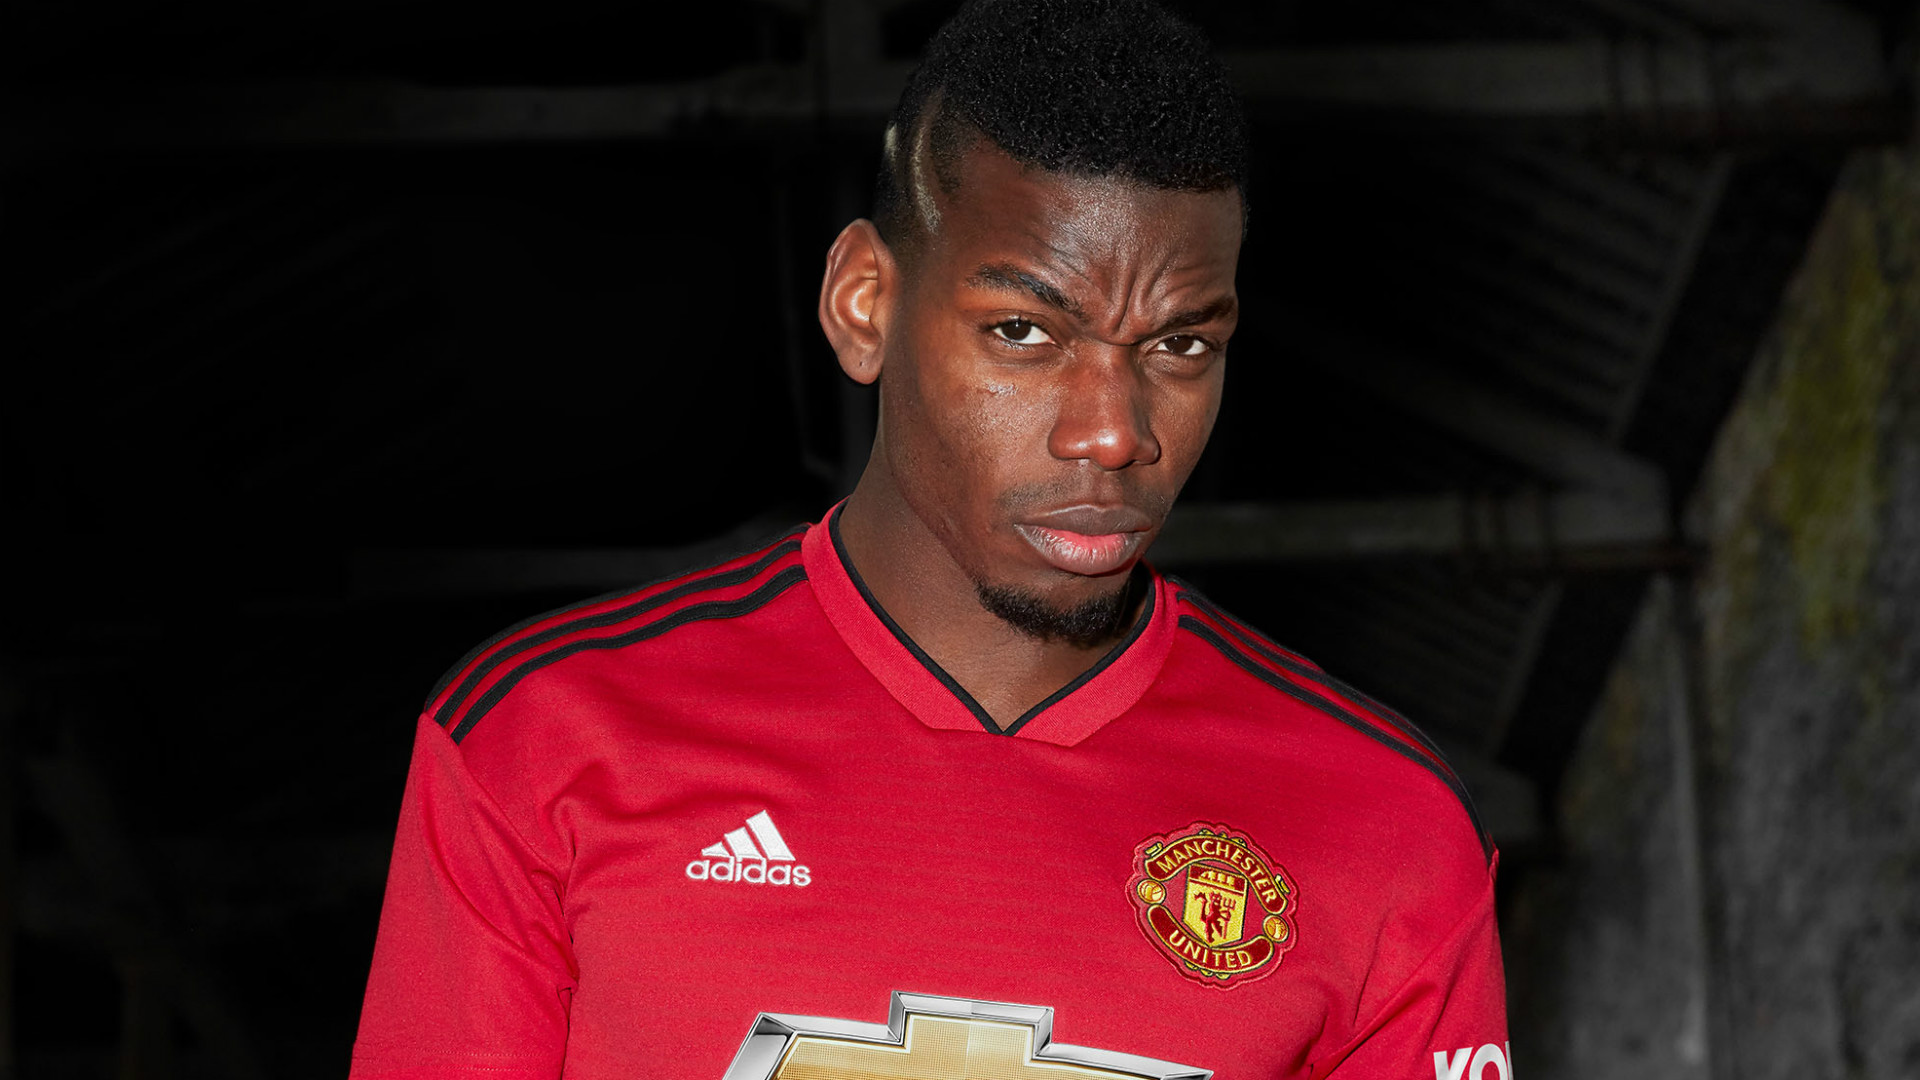 Paul Pogba New Man Utd Shirt